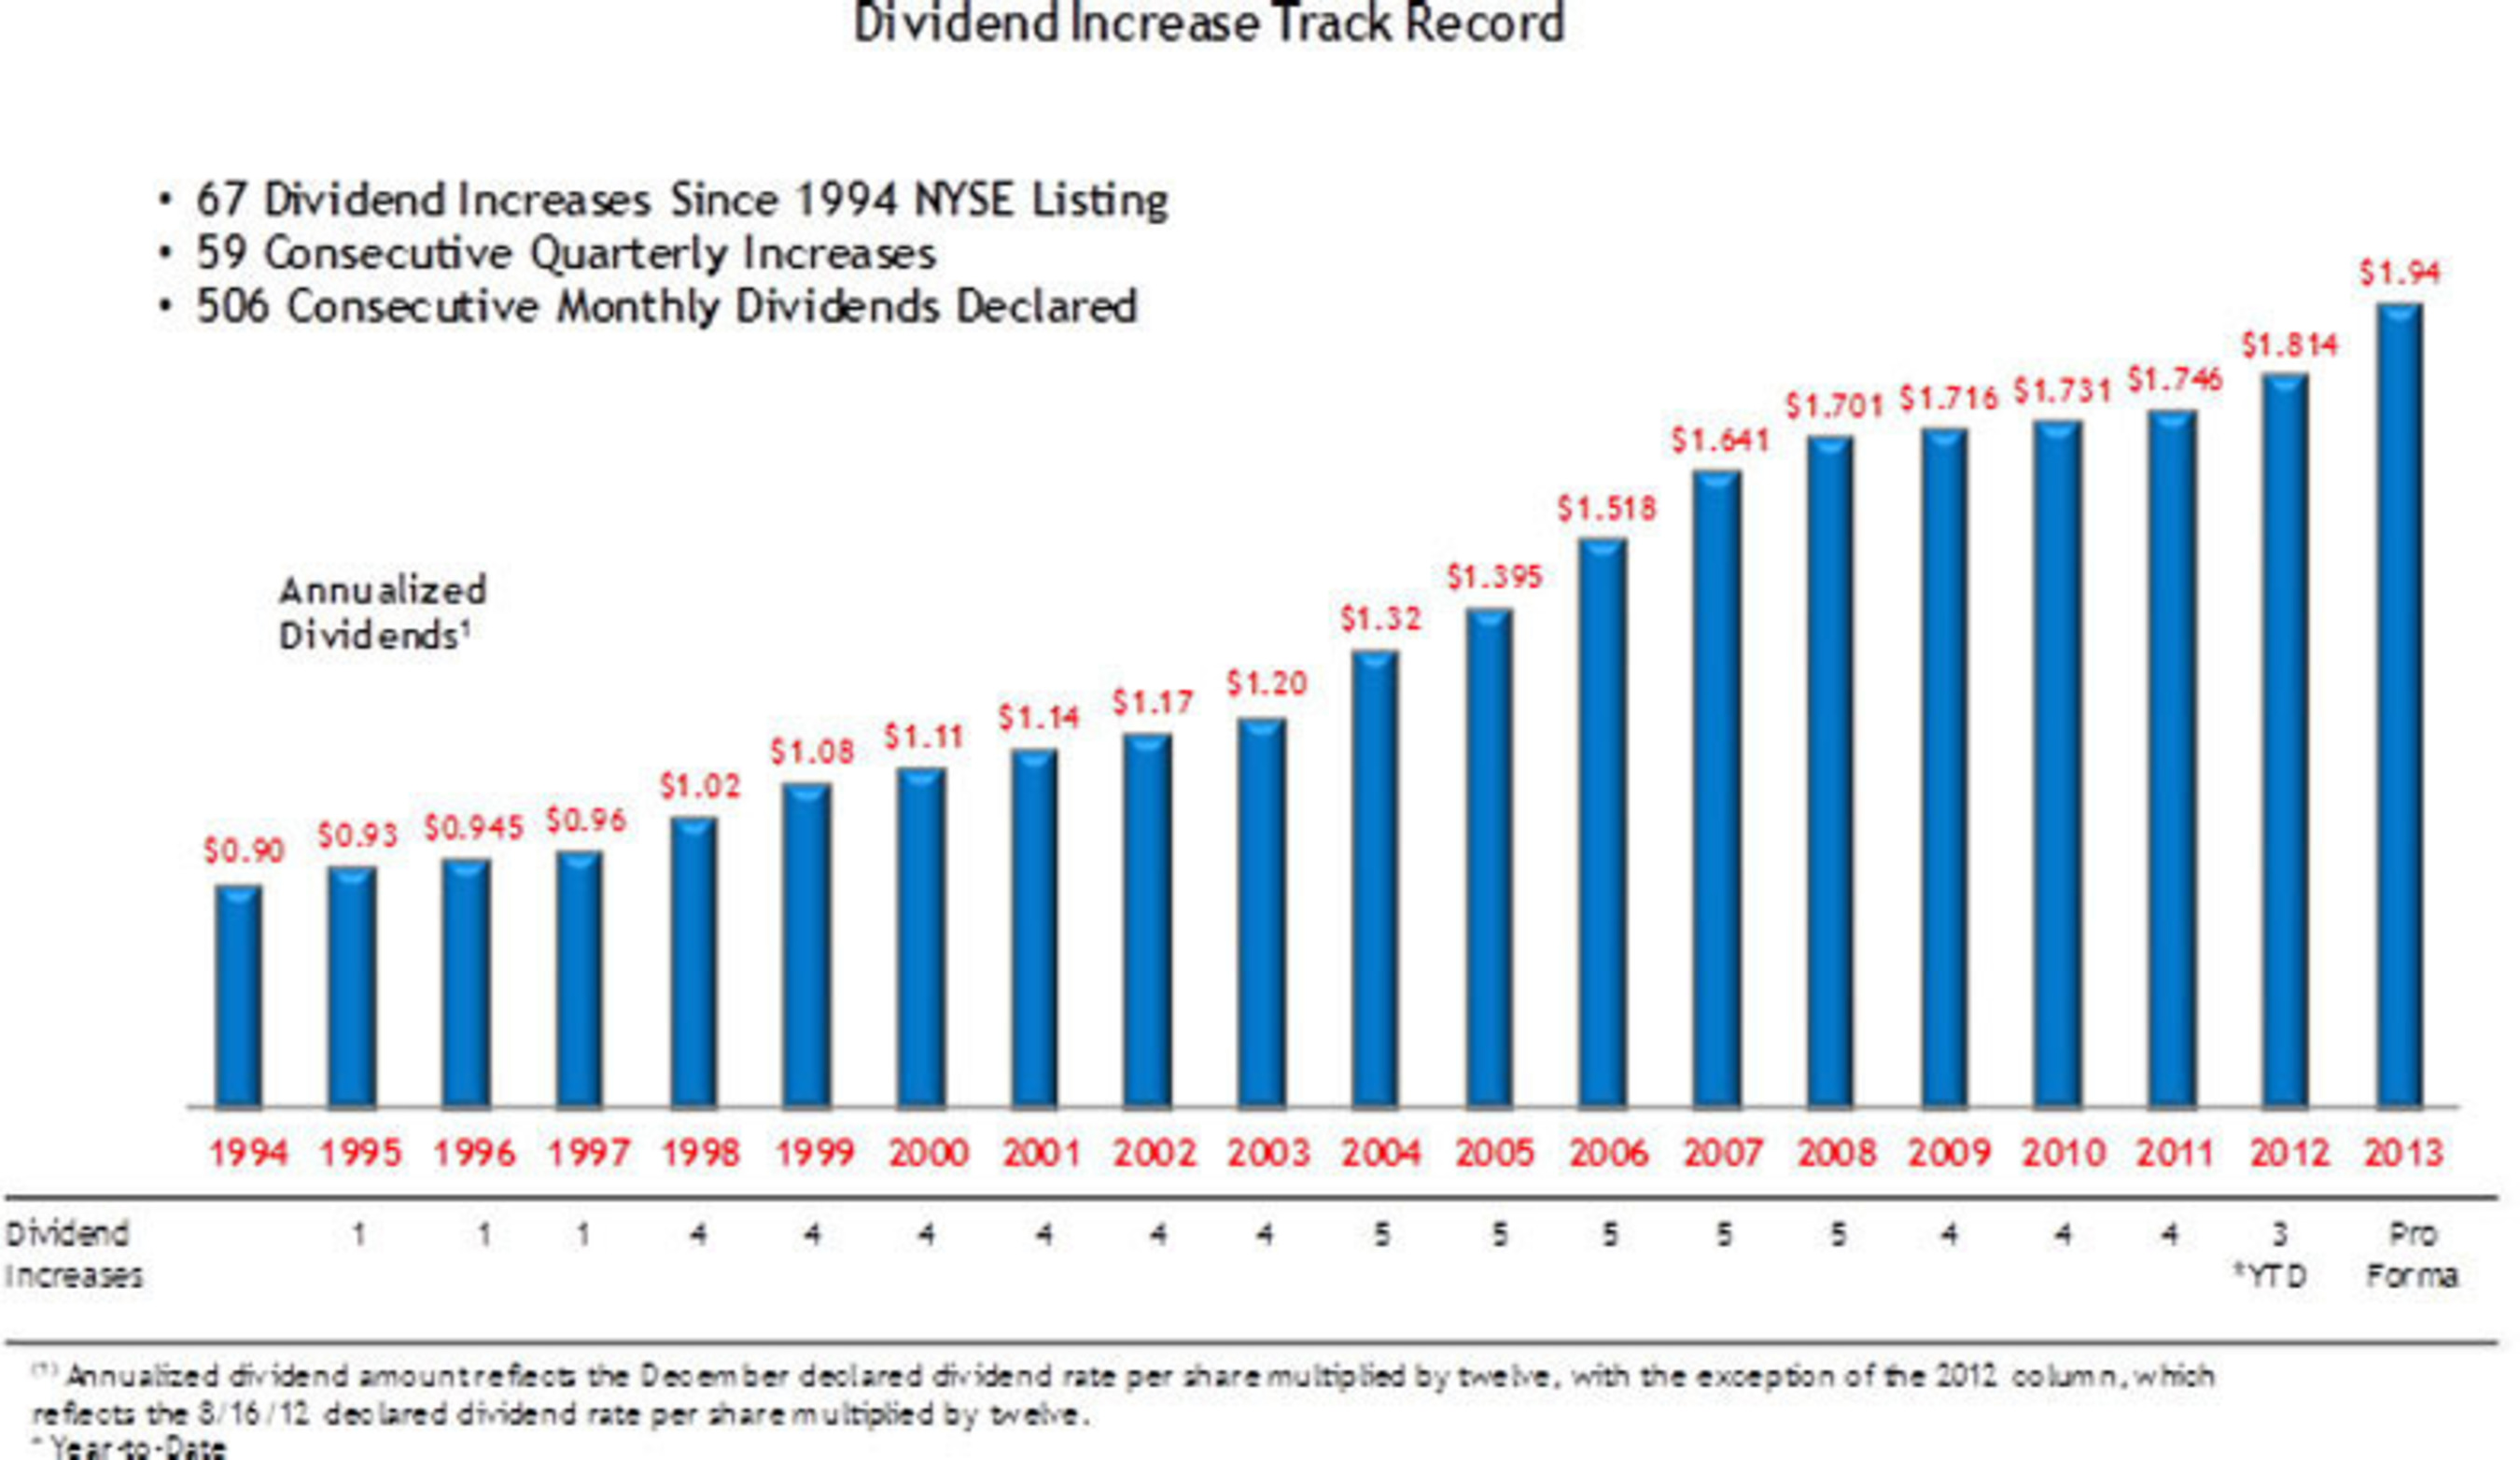 Realty Income: Dividend Increase Track Record.  (PRNewsFoto/American Realty Capital Trust)